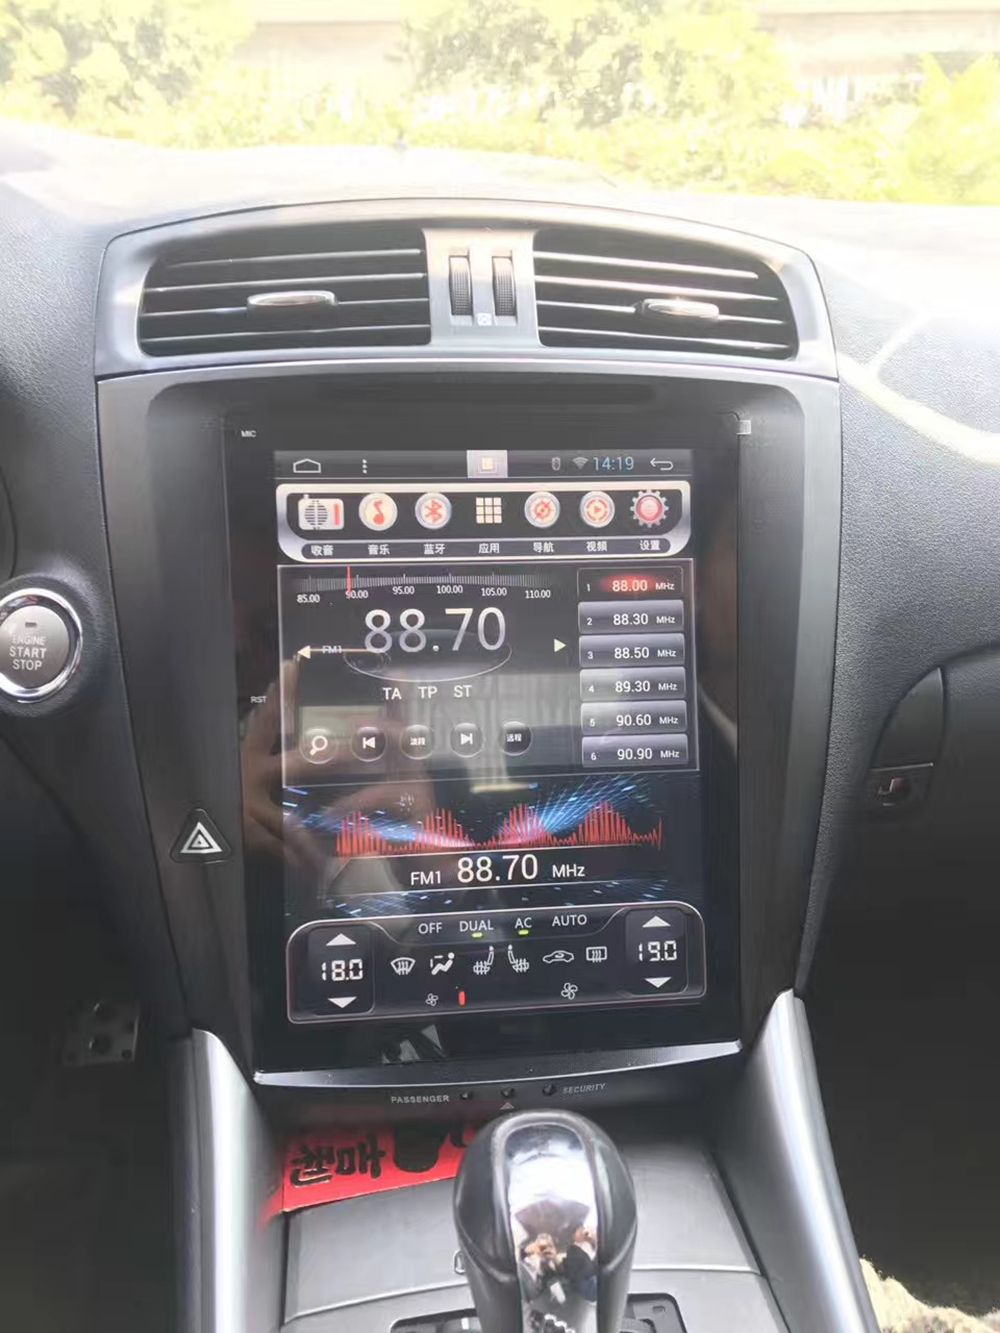 10 4 Tesla Vertical Screen Android Headunit Autoradio Head Unit Car Stereo Gps For Lexus Is Is250 Is300 Is350 2007 2008 Car Stereo Lexus Lexus Is250